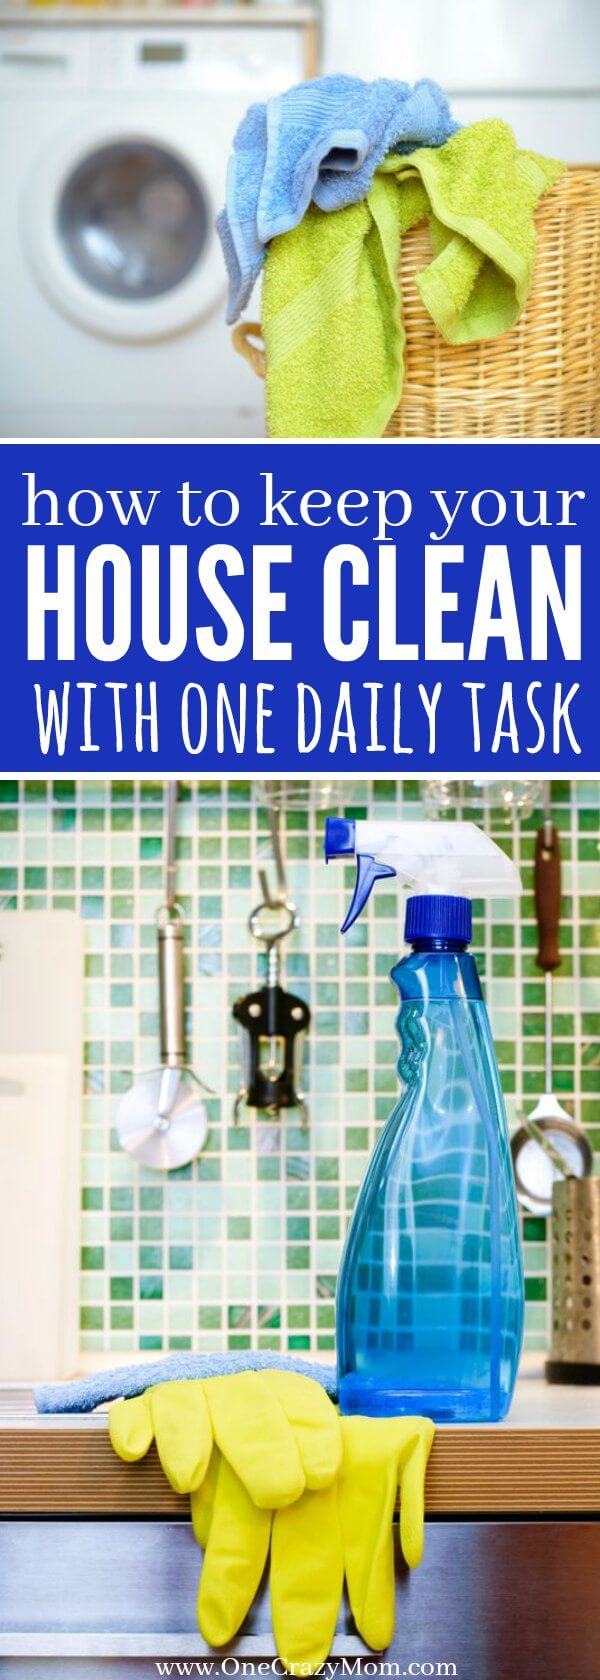 How to keep your house clean house cleaning tips How to keep house clean